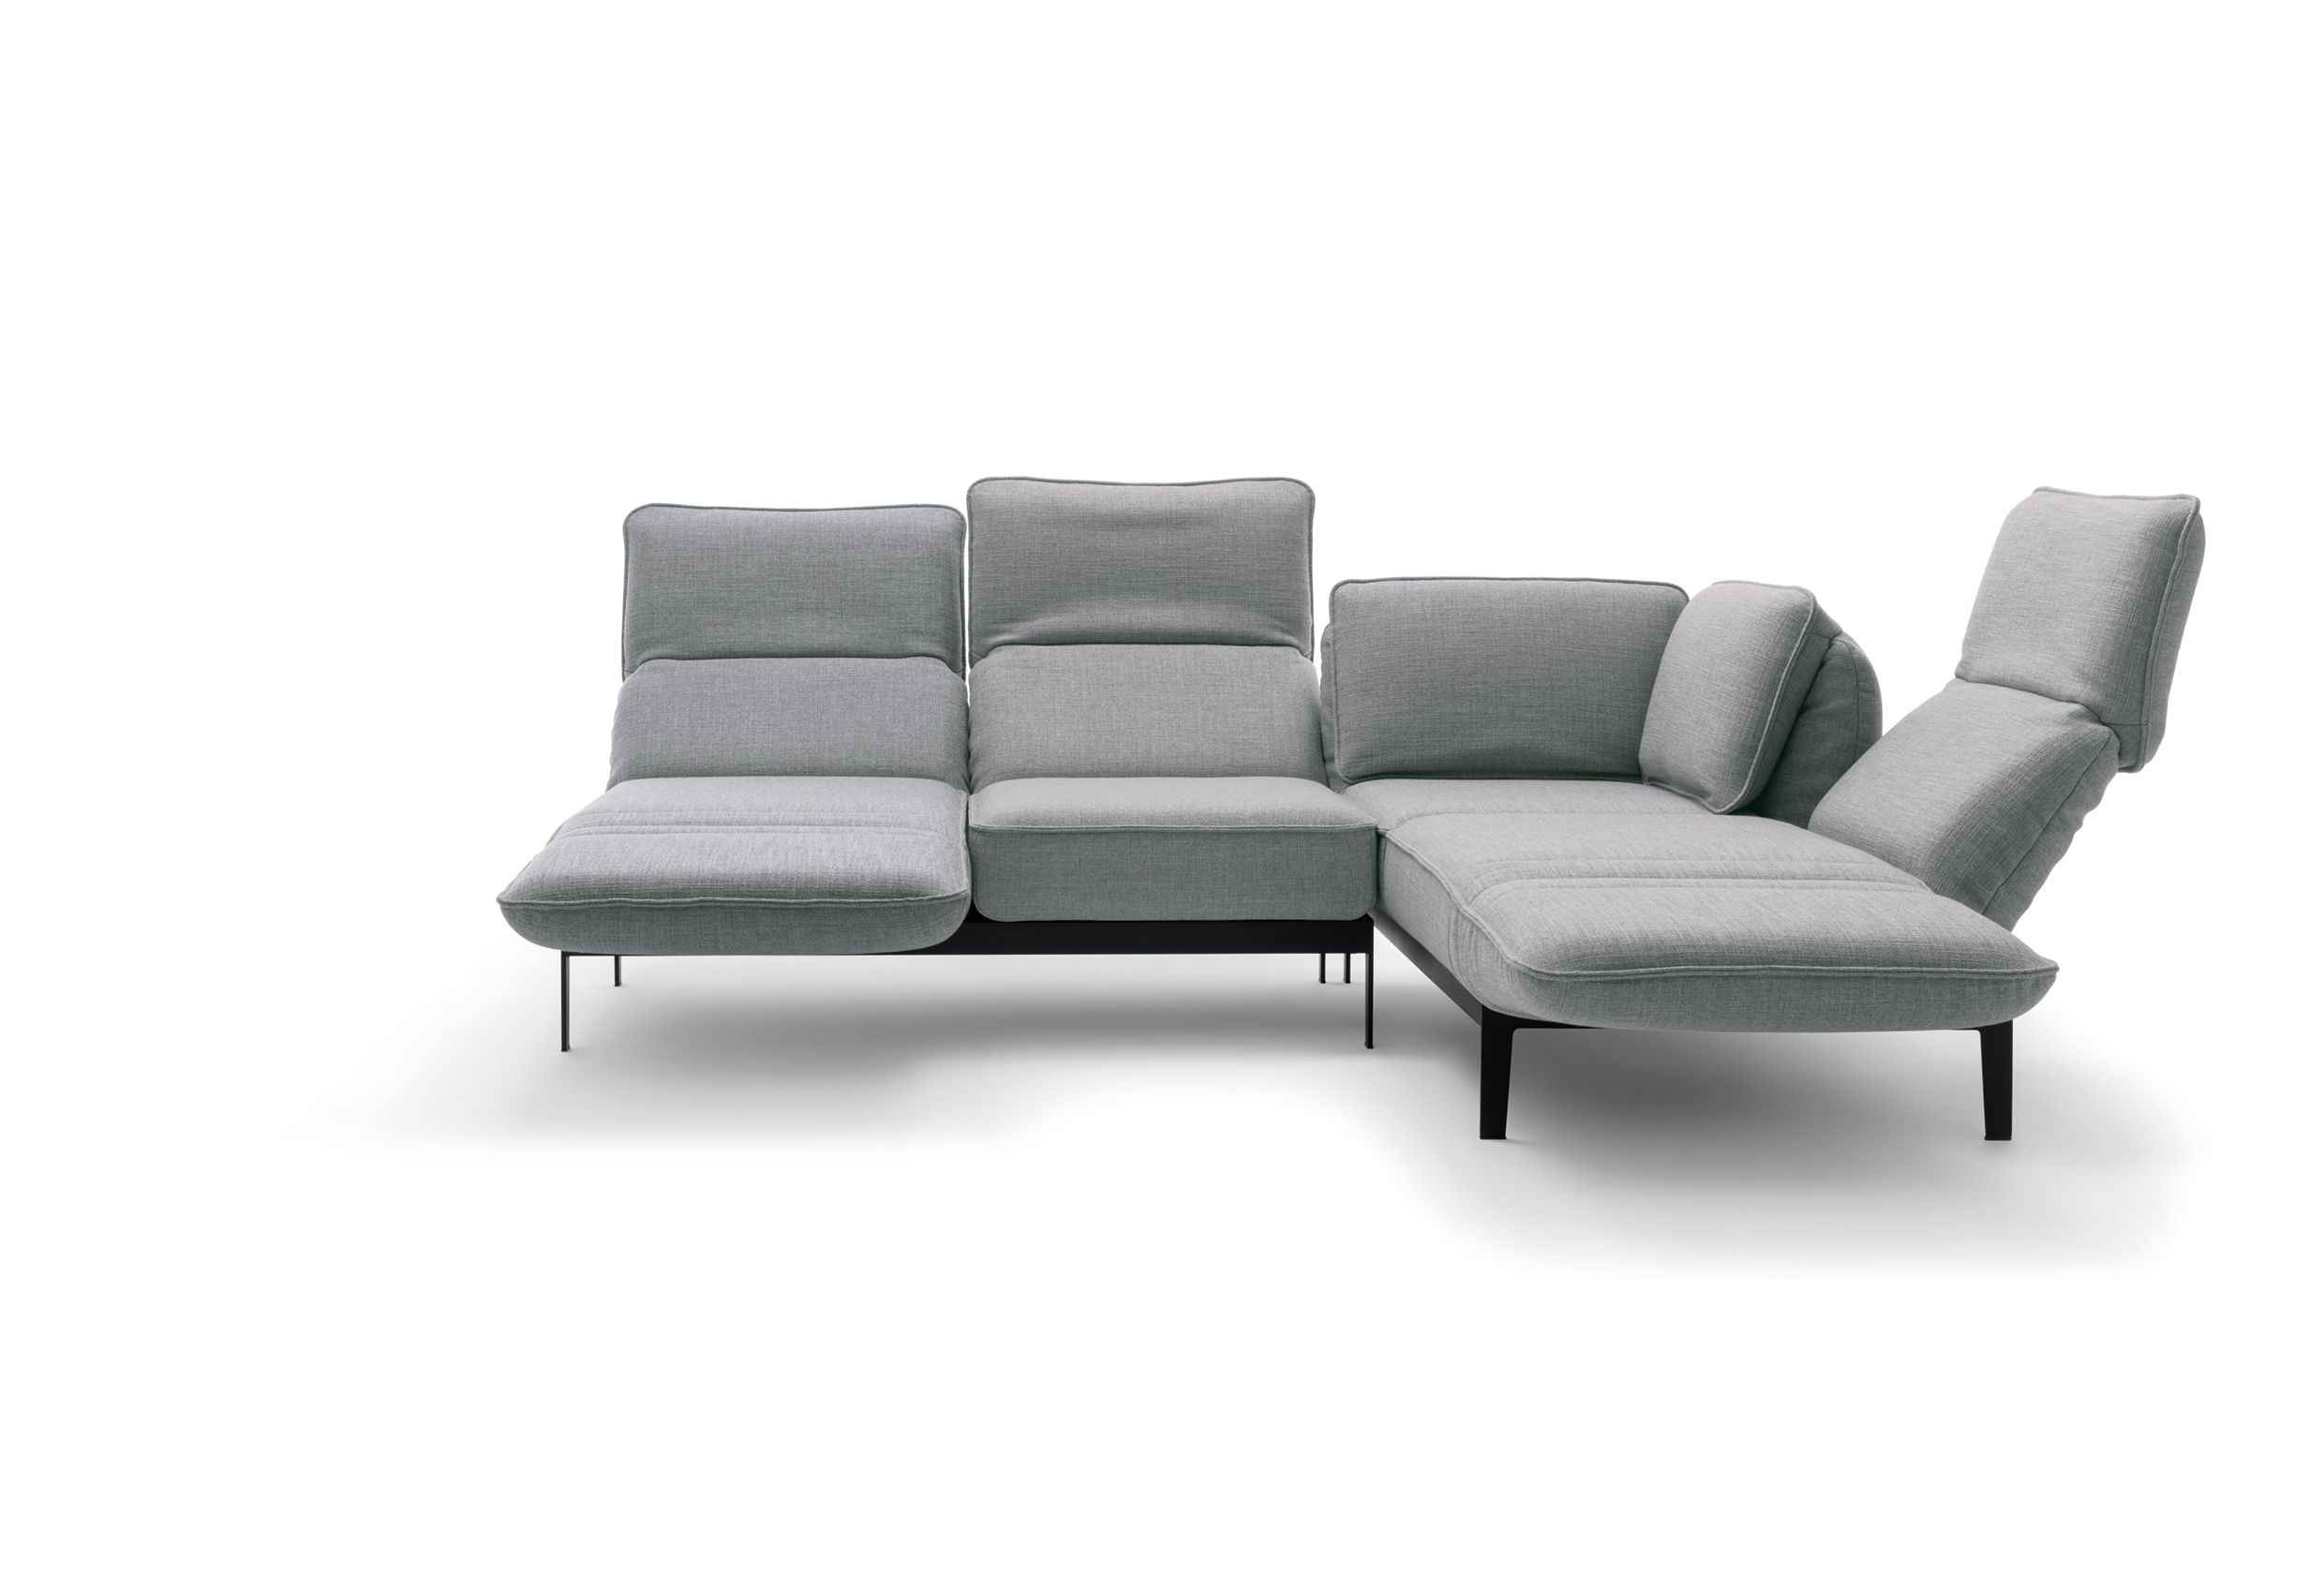 Rolf Benz Nova Rolf Benz Mera Sofa Bed Available Comfort Options For Sitting